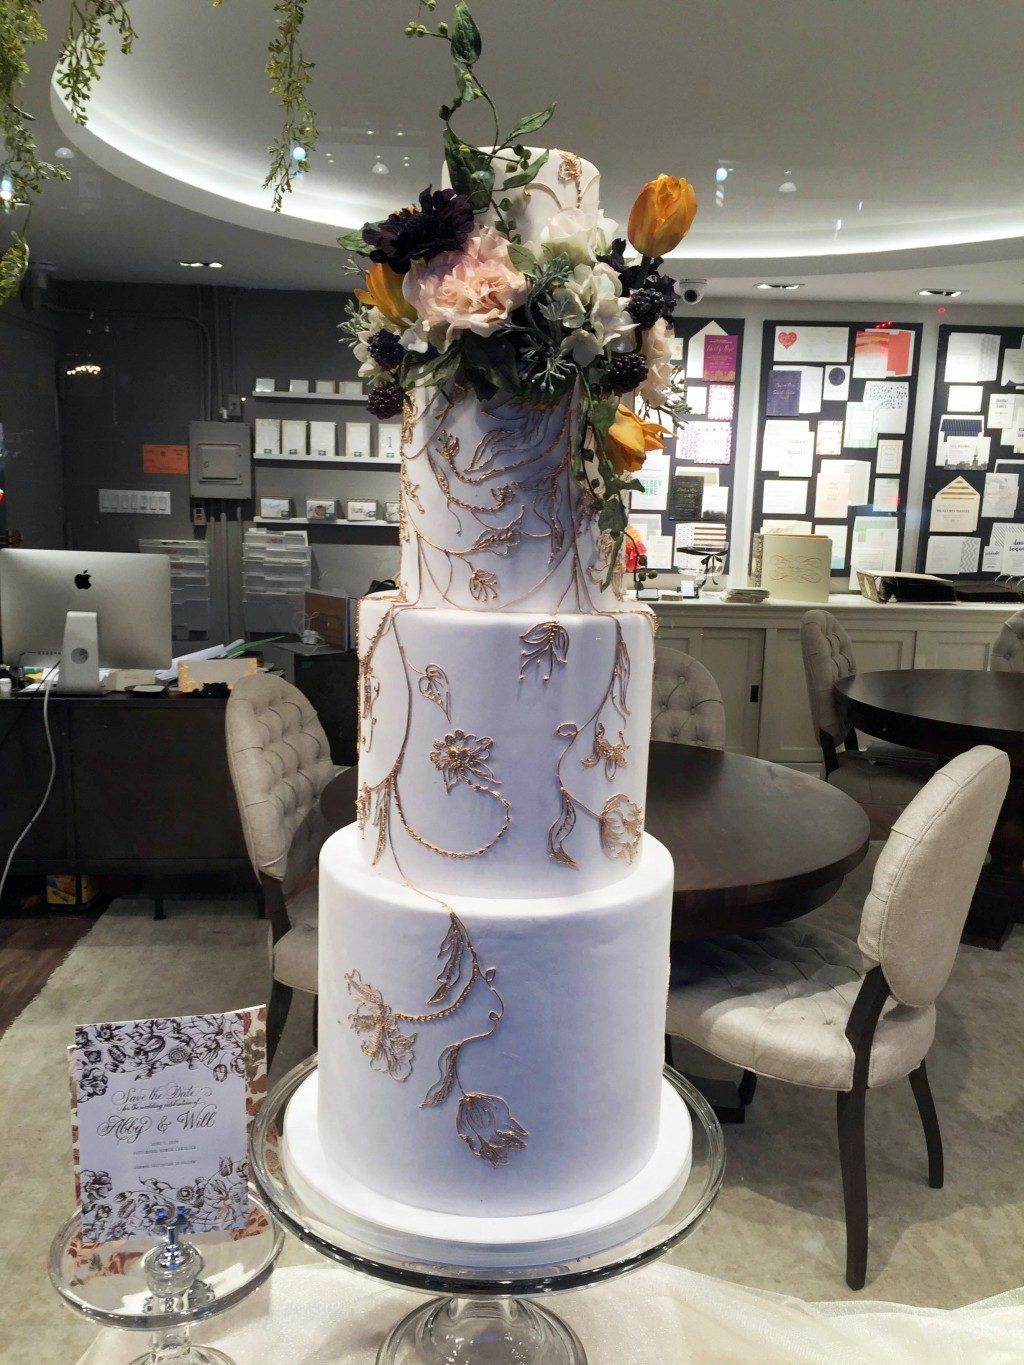 The Adele invitation-inspired wedding cake - a collaboration between Bella Figura + Madison Lee's Cakes